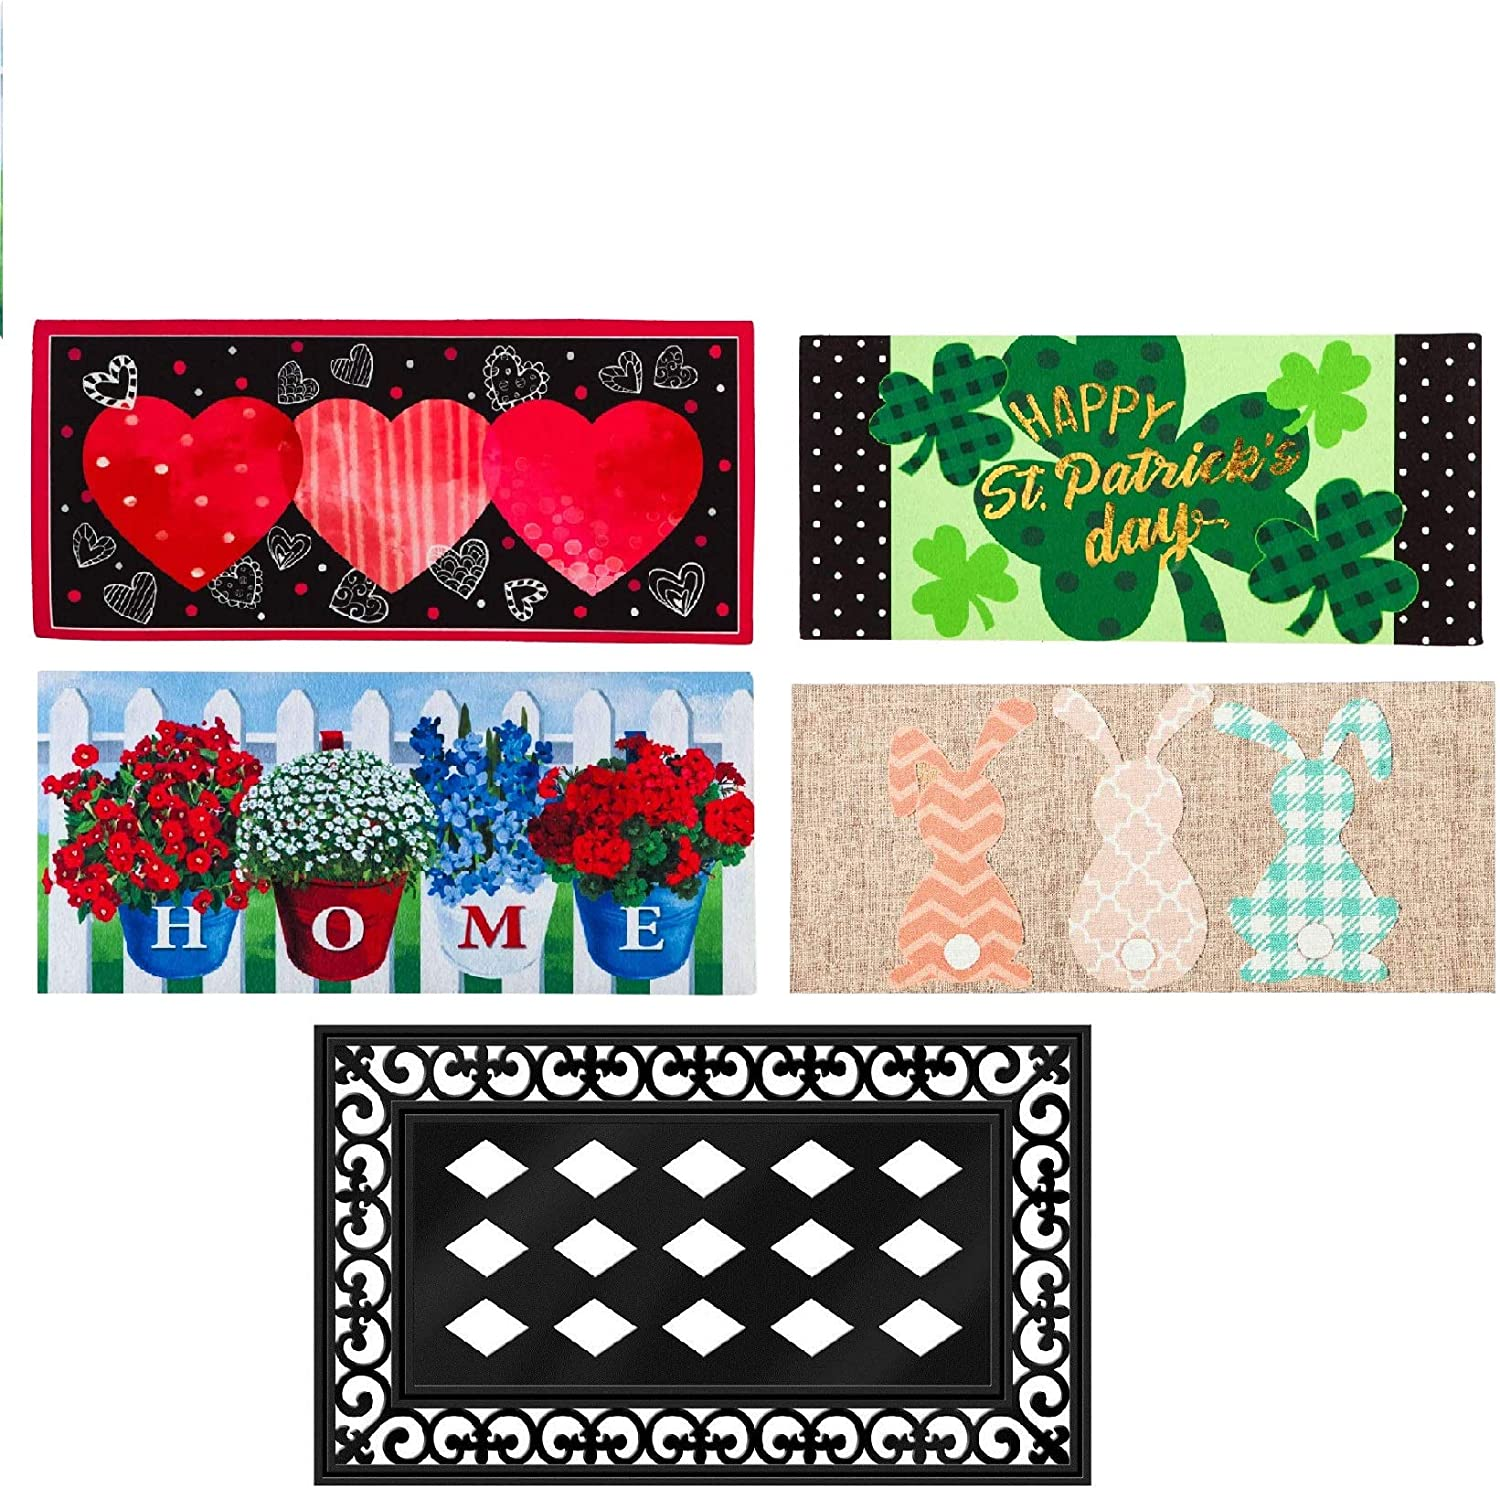 Evergreen Flag Seasonal Sassafras Interchangeable Mat and Tray Set of Five Modern Farmhouse Chic Door Decor for Valentines Day Easter St. Patrick's Day and 4th of July